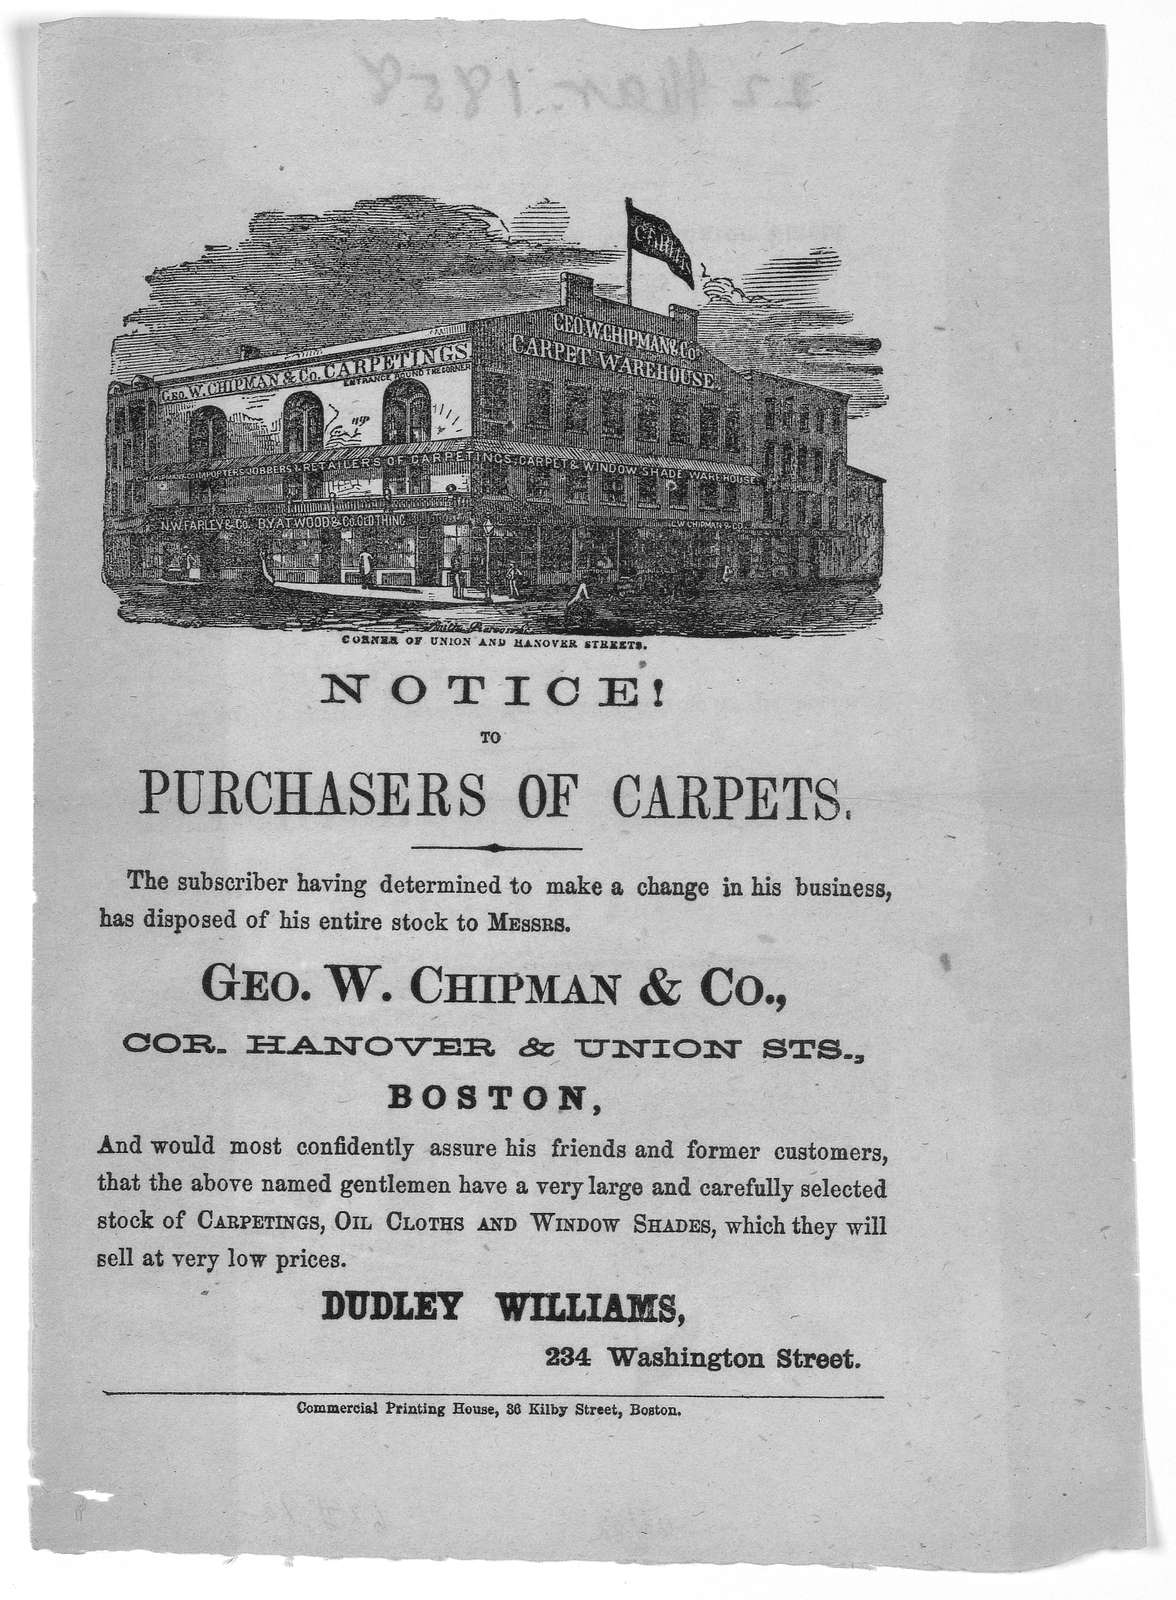 Notice! to purchasers of carpets. The subscriber having determined to make a change in his business, has disposed of his entire stock to Messrs. Geo. W. Chipman & Co., Cor. Hanover & Union Sts. Boston ... Dudley Williams, 234 Washington Street.